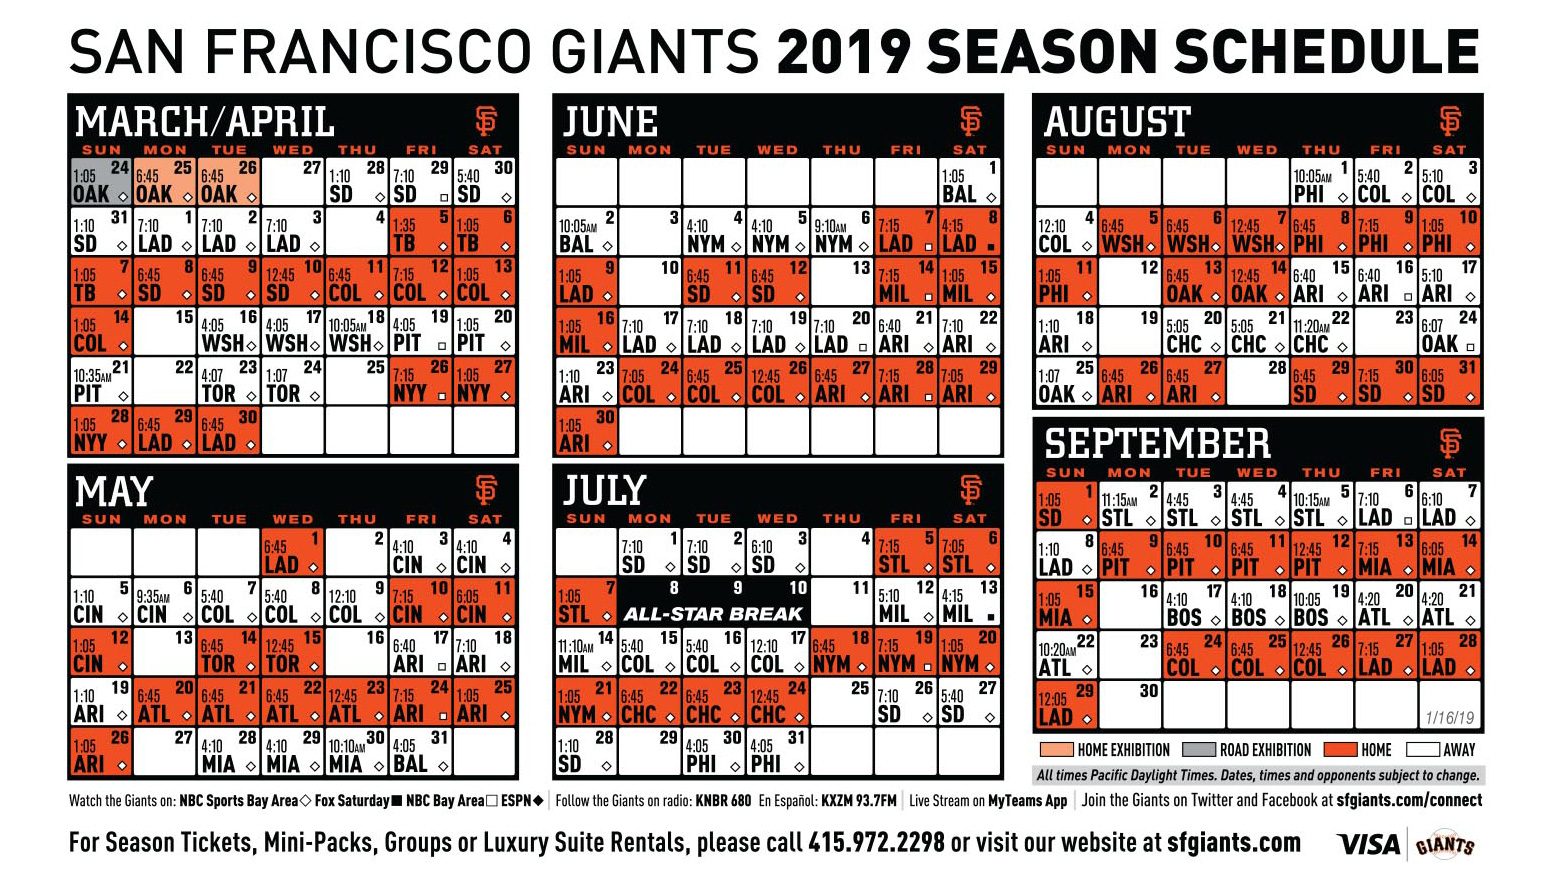 photograph about Diamondbacks Schedule Printable named Giants 2019 Printable Agenda San Francisco Giants